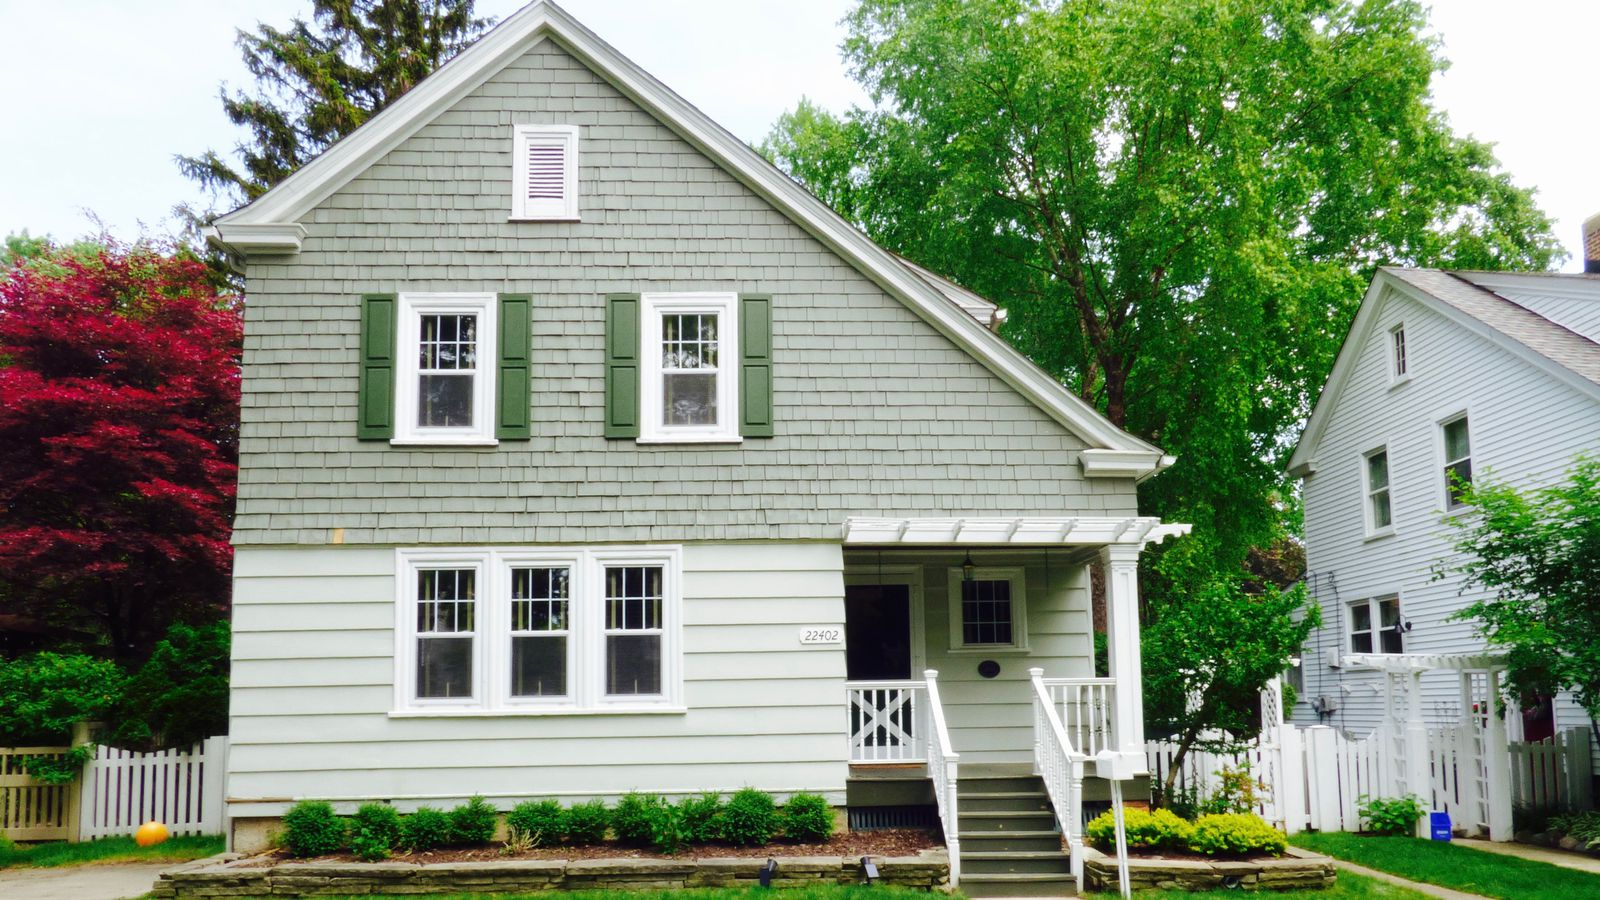 historic model b ford home in dearborn asks 339k curbed